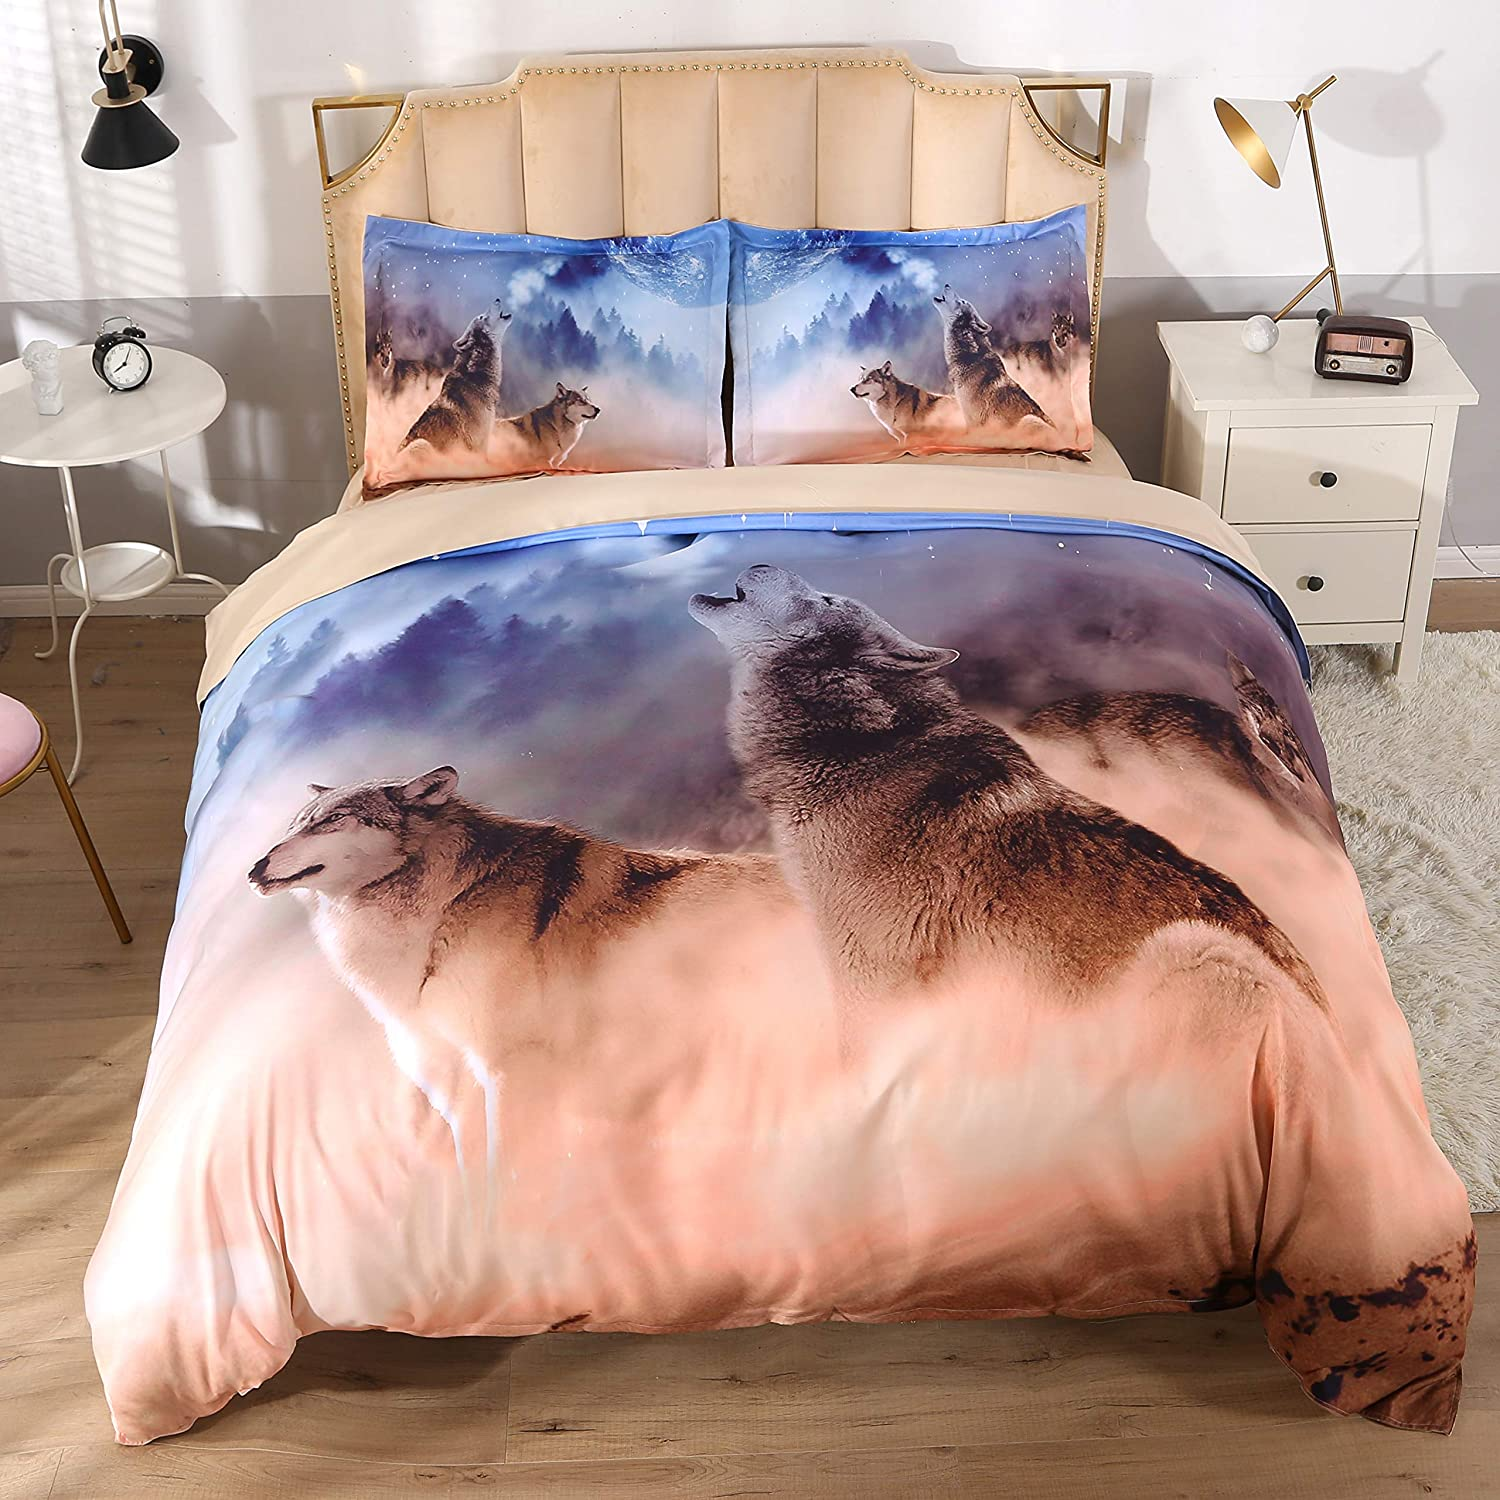 KINBEDY 3D Wolf in Desert and Forest, Colorful Animal Theme Digital Bedding for Boys and Girls, 4 Piece Blue and White Duvet Cover Set Twin Size.